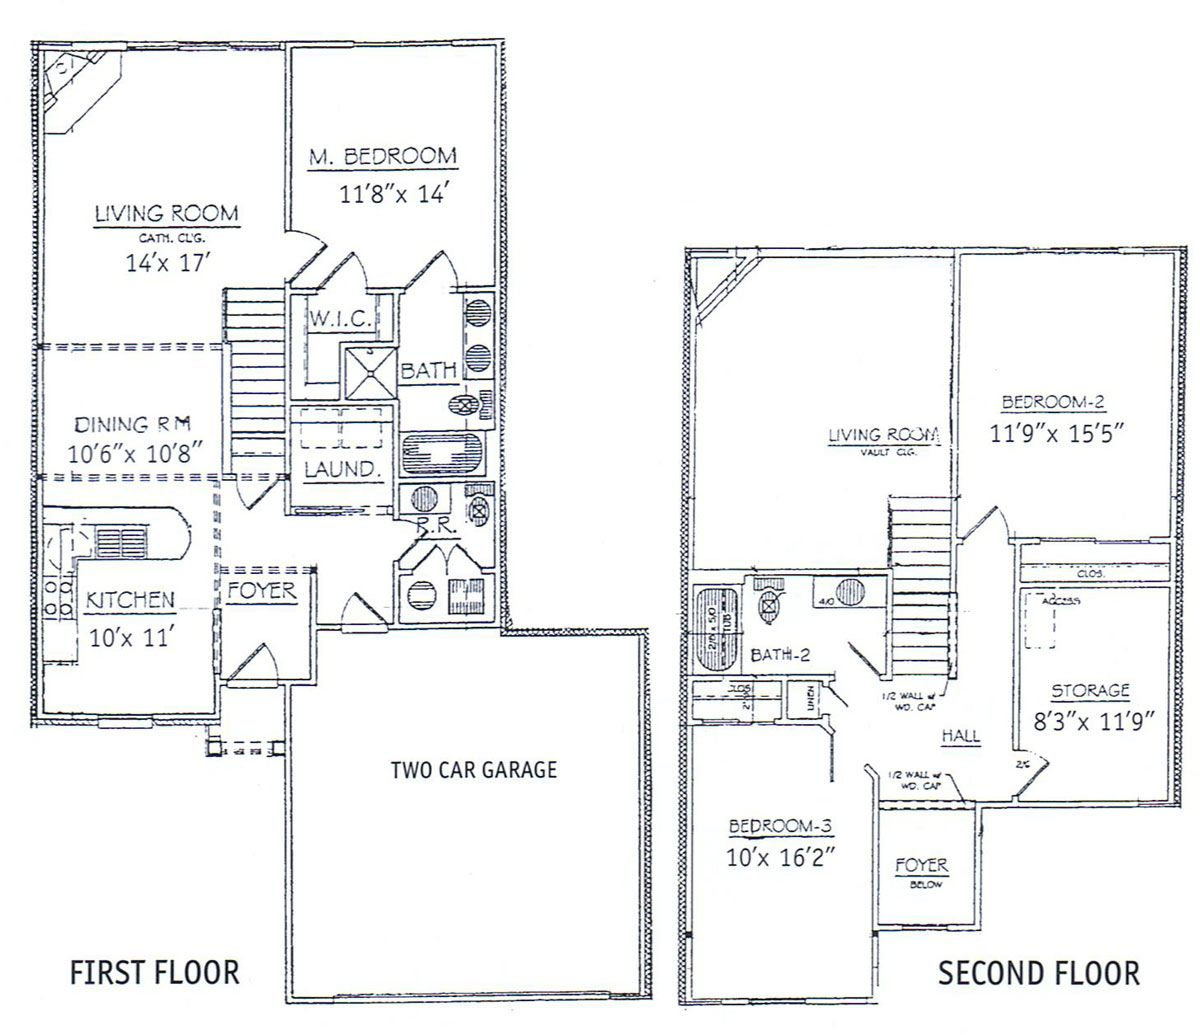 3 Bedrooms Floor Plans 2 Story | ... Bdrm Basement The Two Three Bedroom  Two Story Townhome Floor Plan